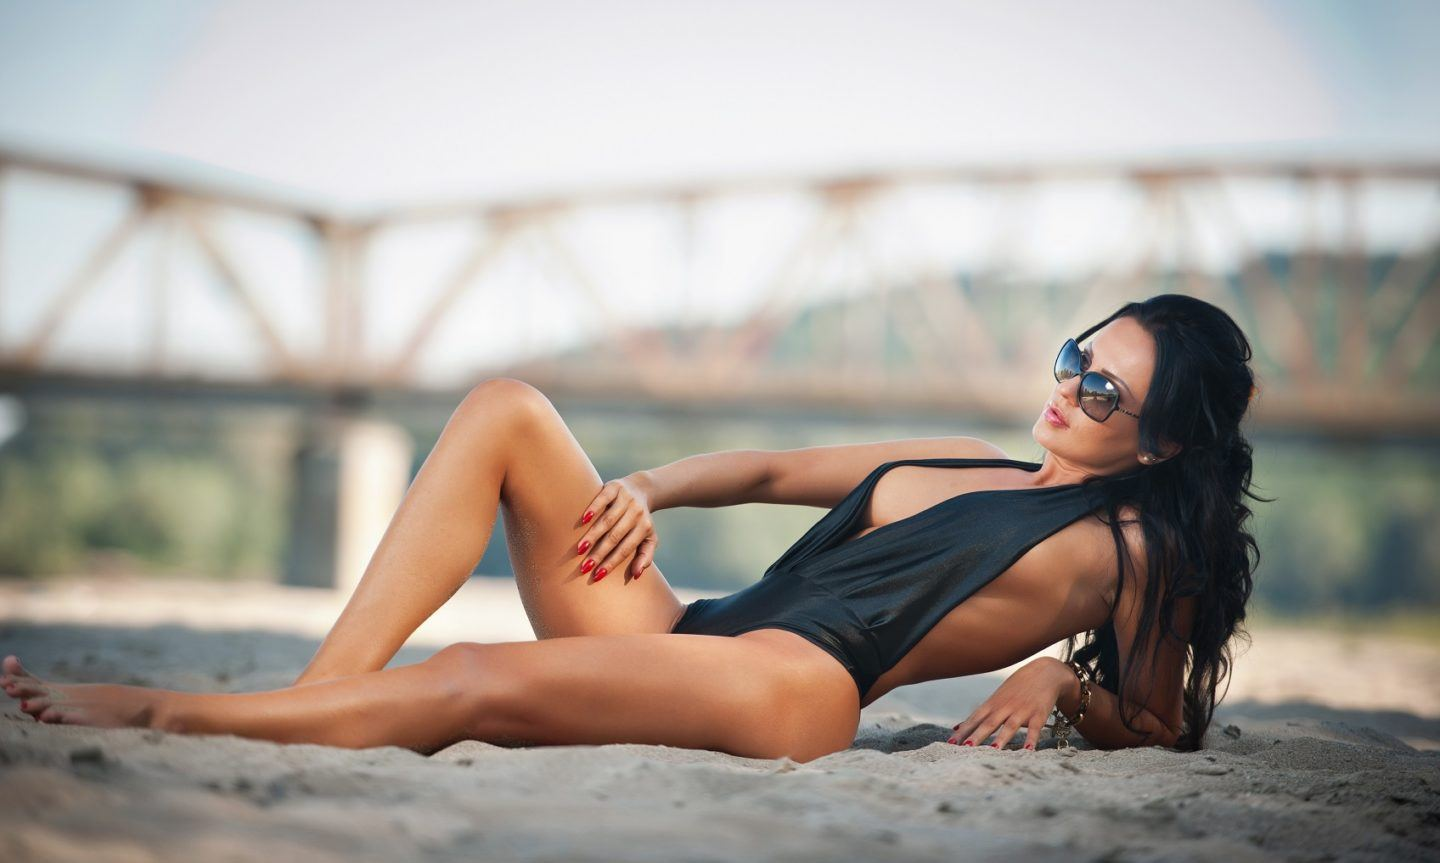 Portrait of young sexy brunette girl in black low-cut swimsuit lying on the beach with a bridge in background. Sensual attractive woman with sunglasses and perfect body relaxing on the beach.